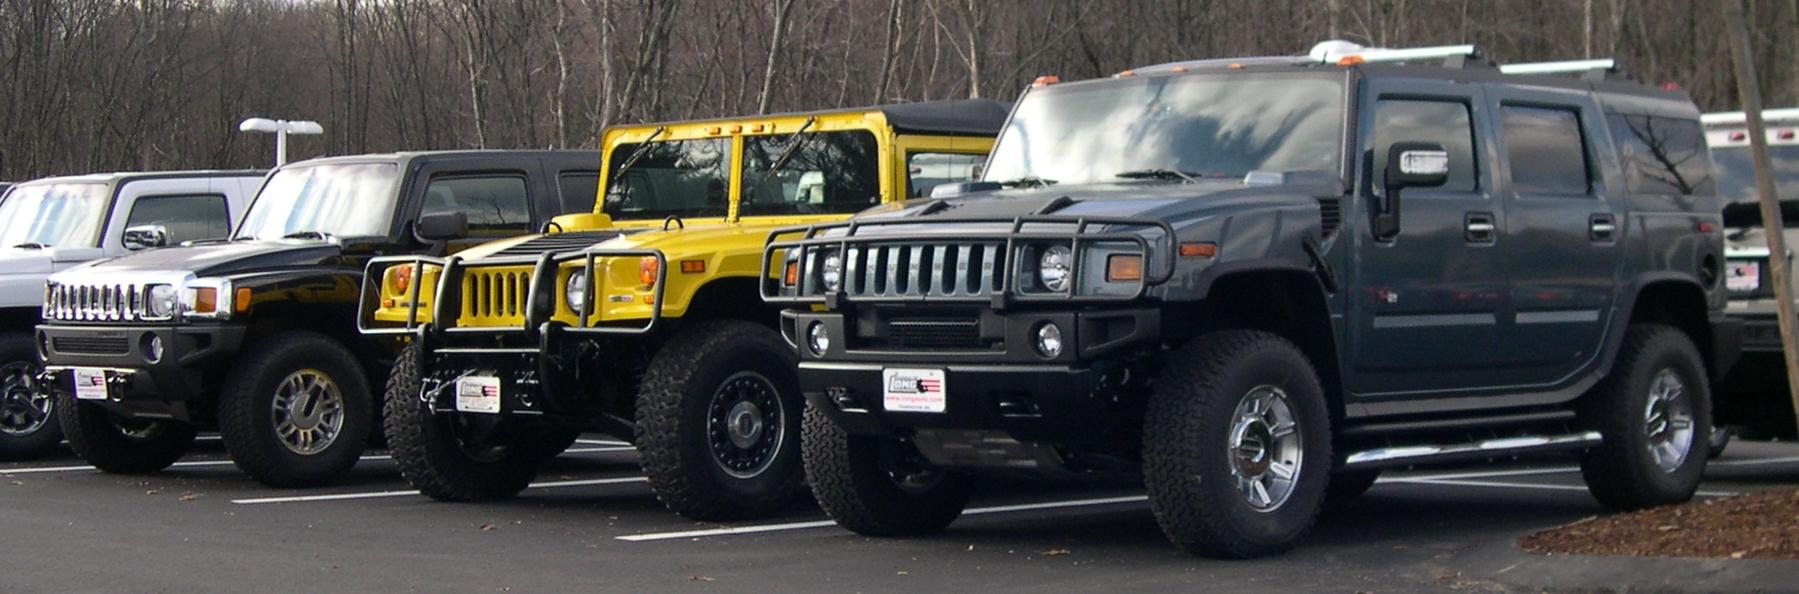 File:2006 Hummer H3 H1 and H2.jpg - Wikimedia Commons